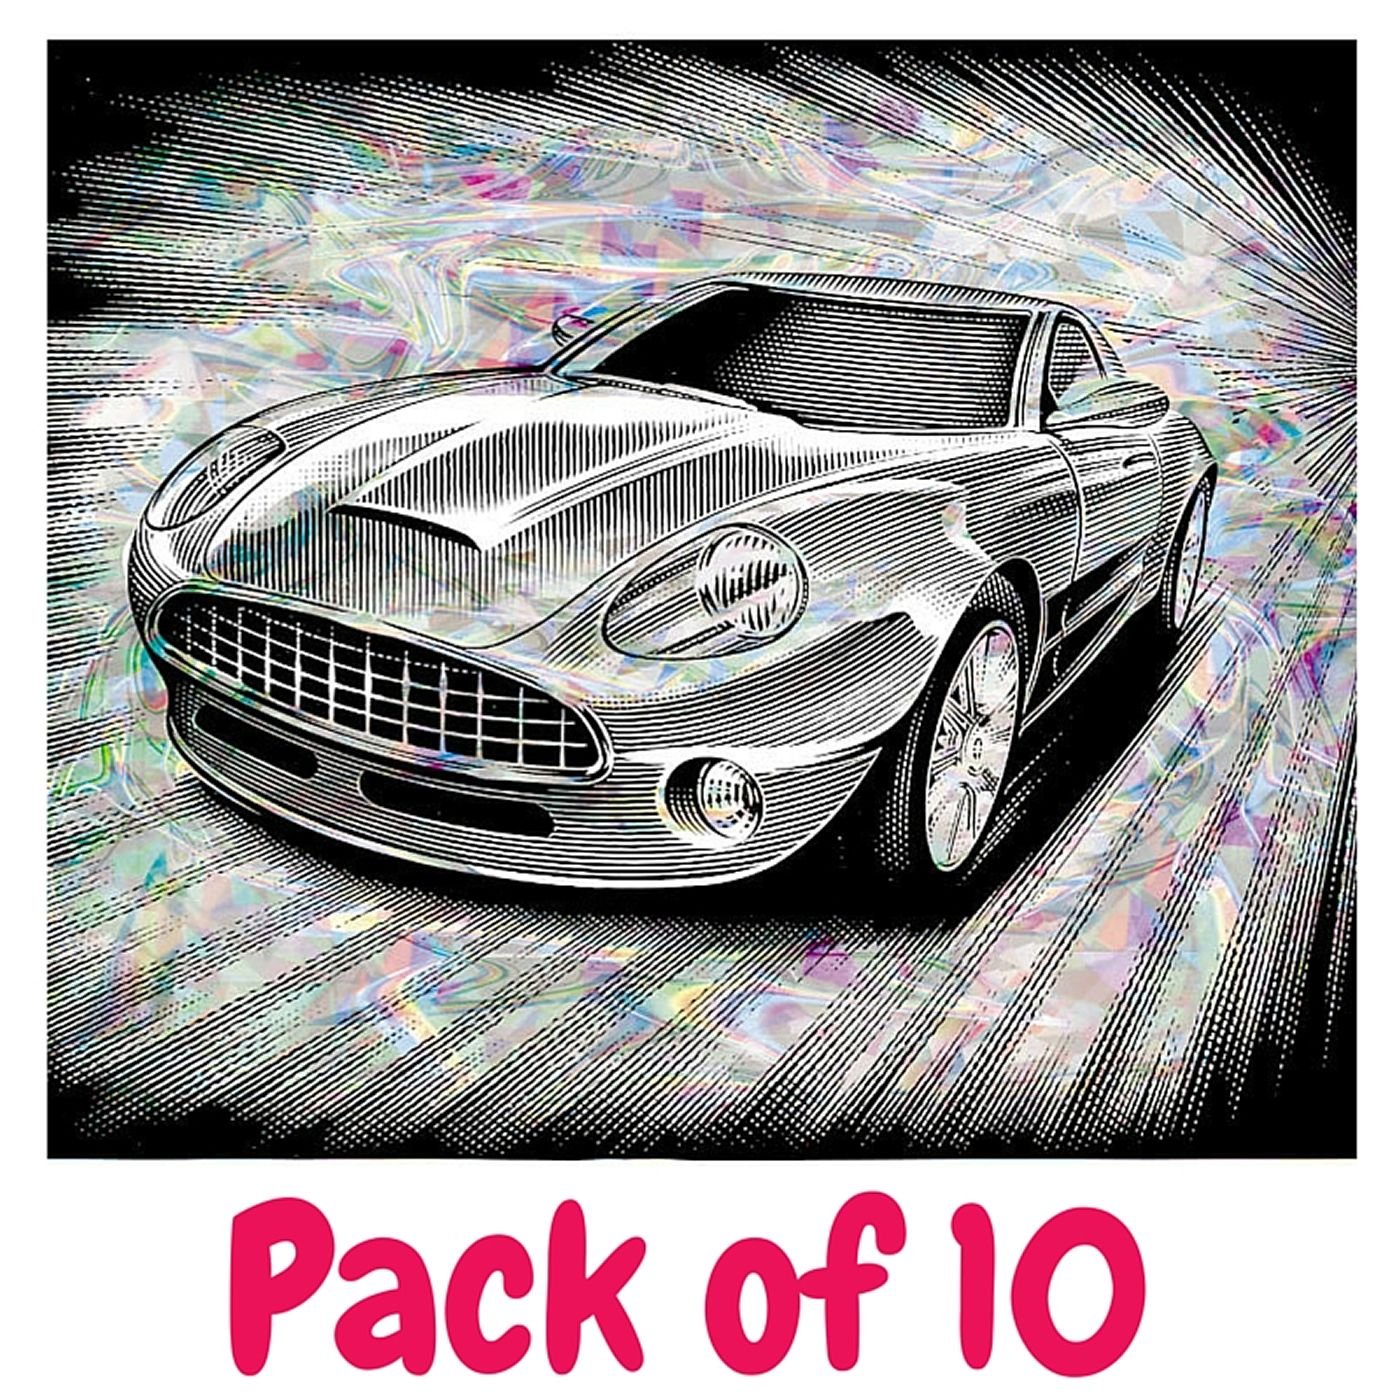 Holographic Scraperfoil 152mm x 101mm, Pack of 10